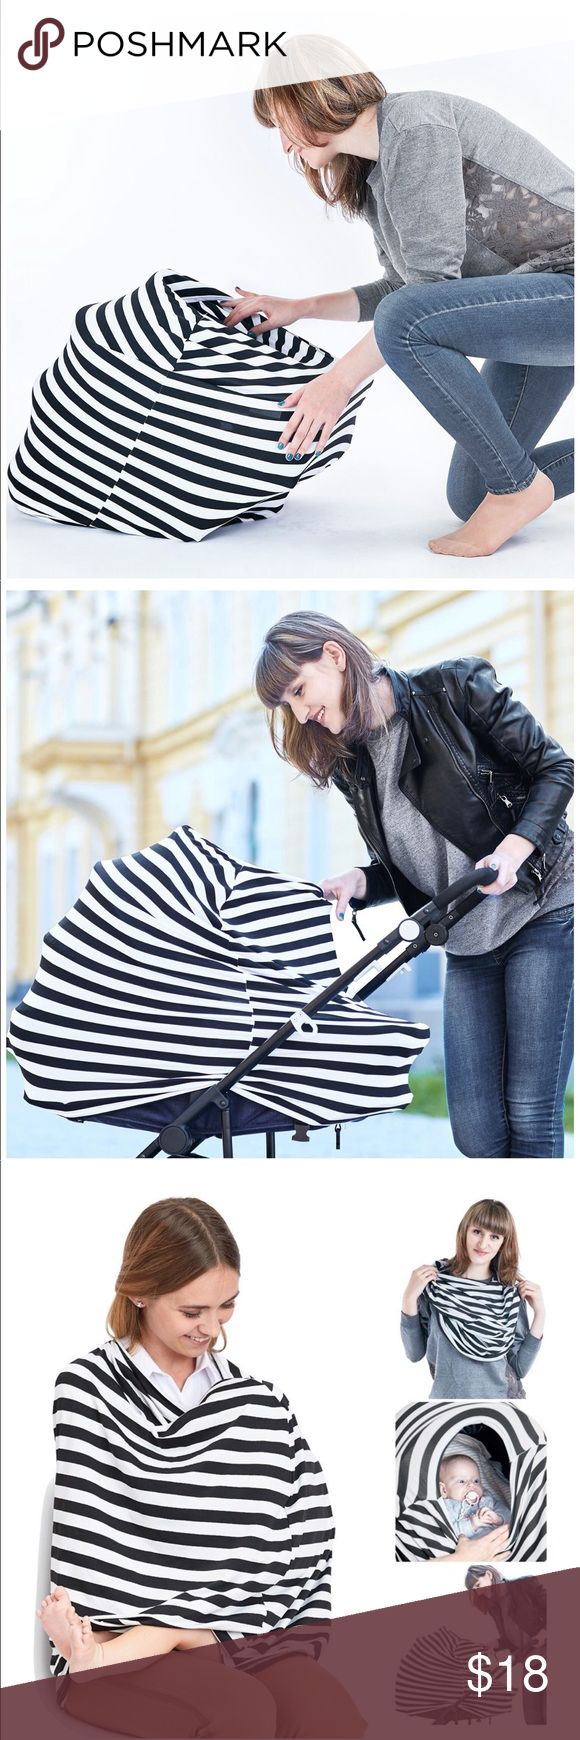 Baby Car seat Cover and Breastfeeding Scarf Nursing Cover Breastfeeding Scarf, Baby Car Seat Canopy, Shopping Cart, Stroller, Carseat Covers for Girls and Boys, Best Multi-Use Infinity Stretchy Shawl BBTKCARE Accessories